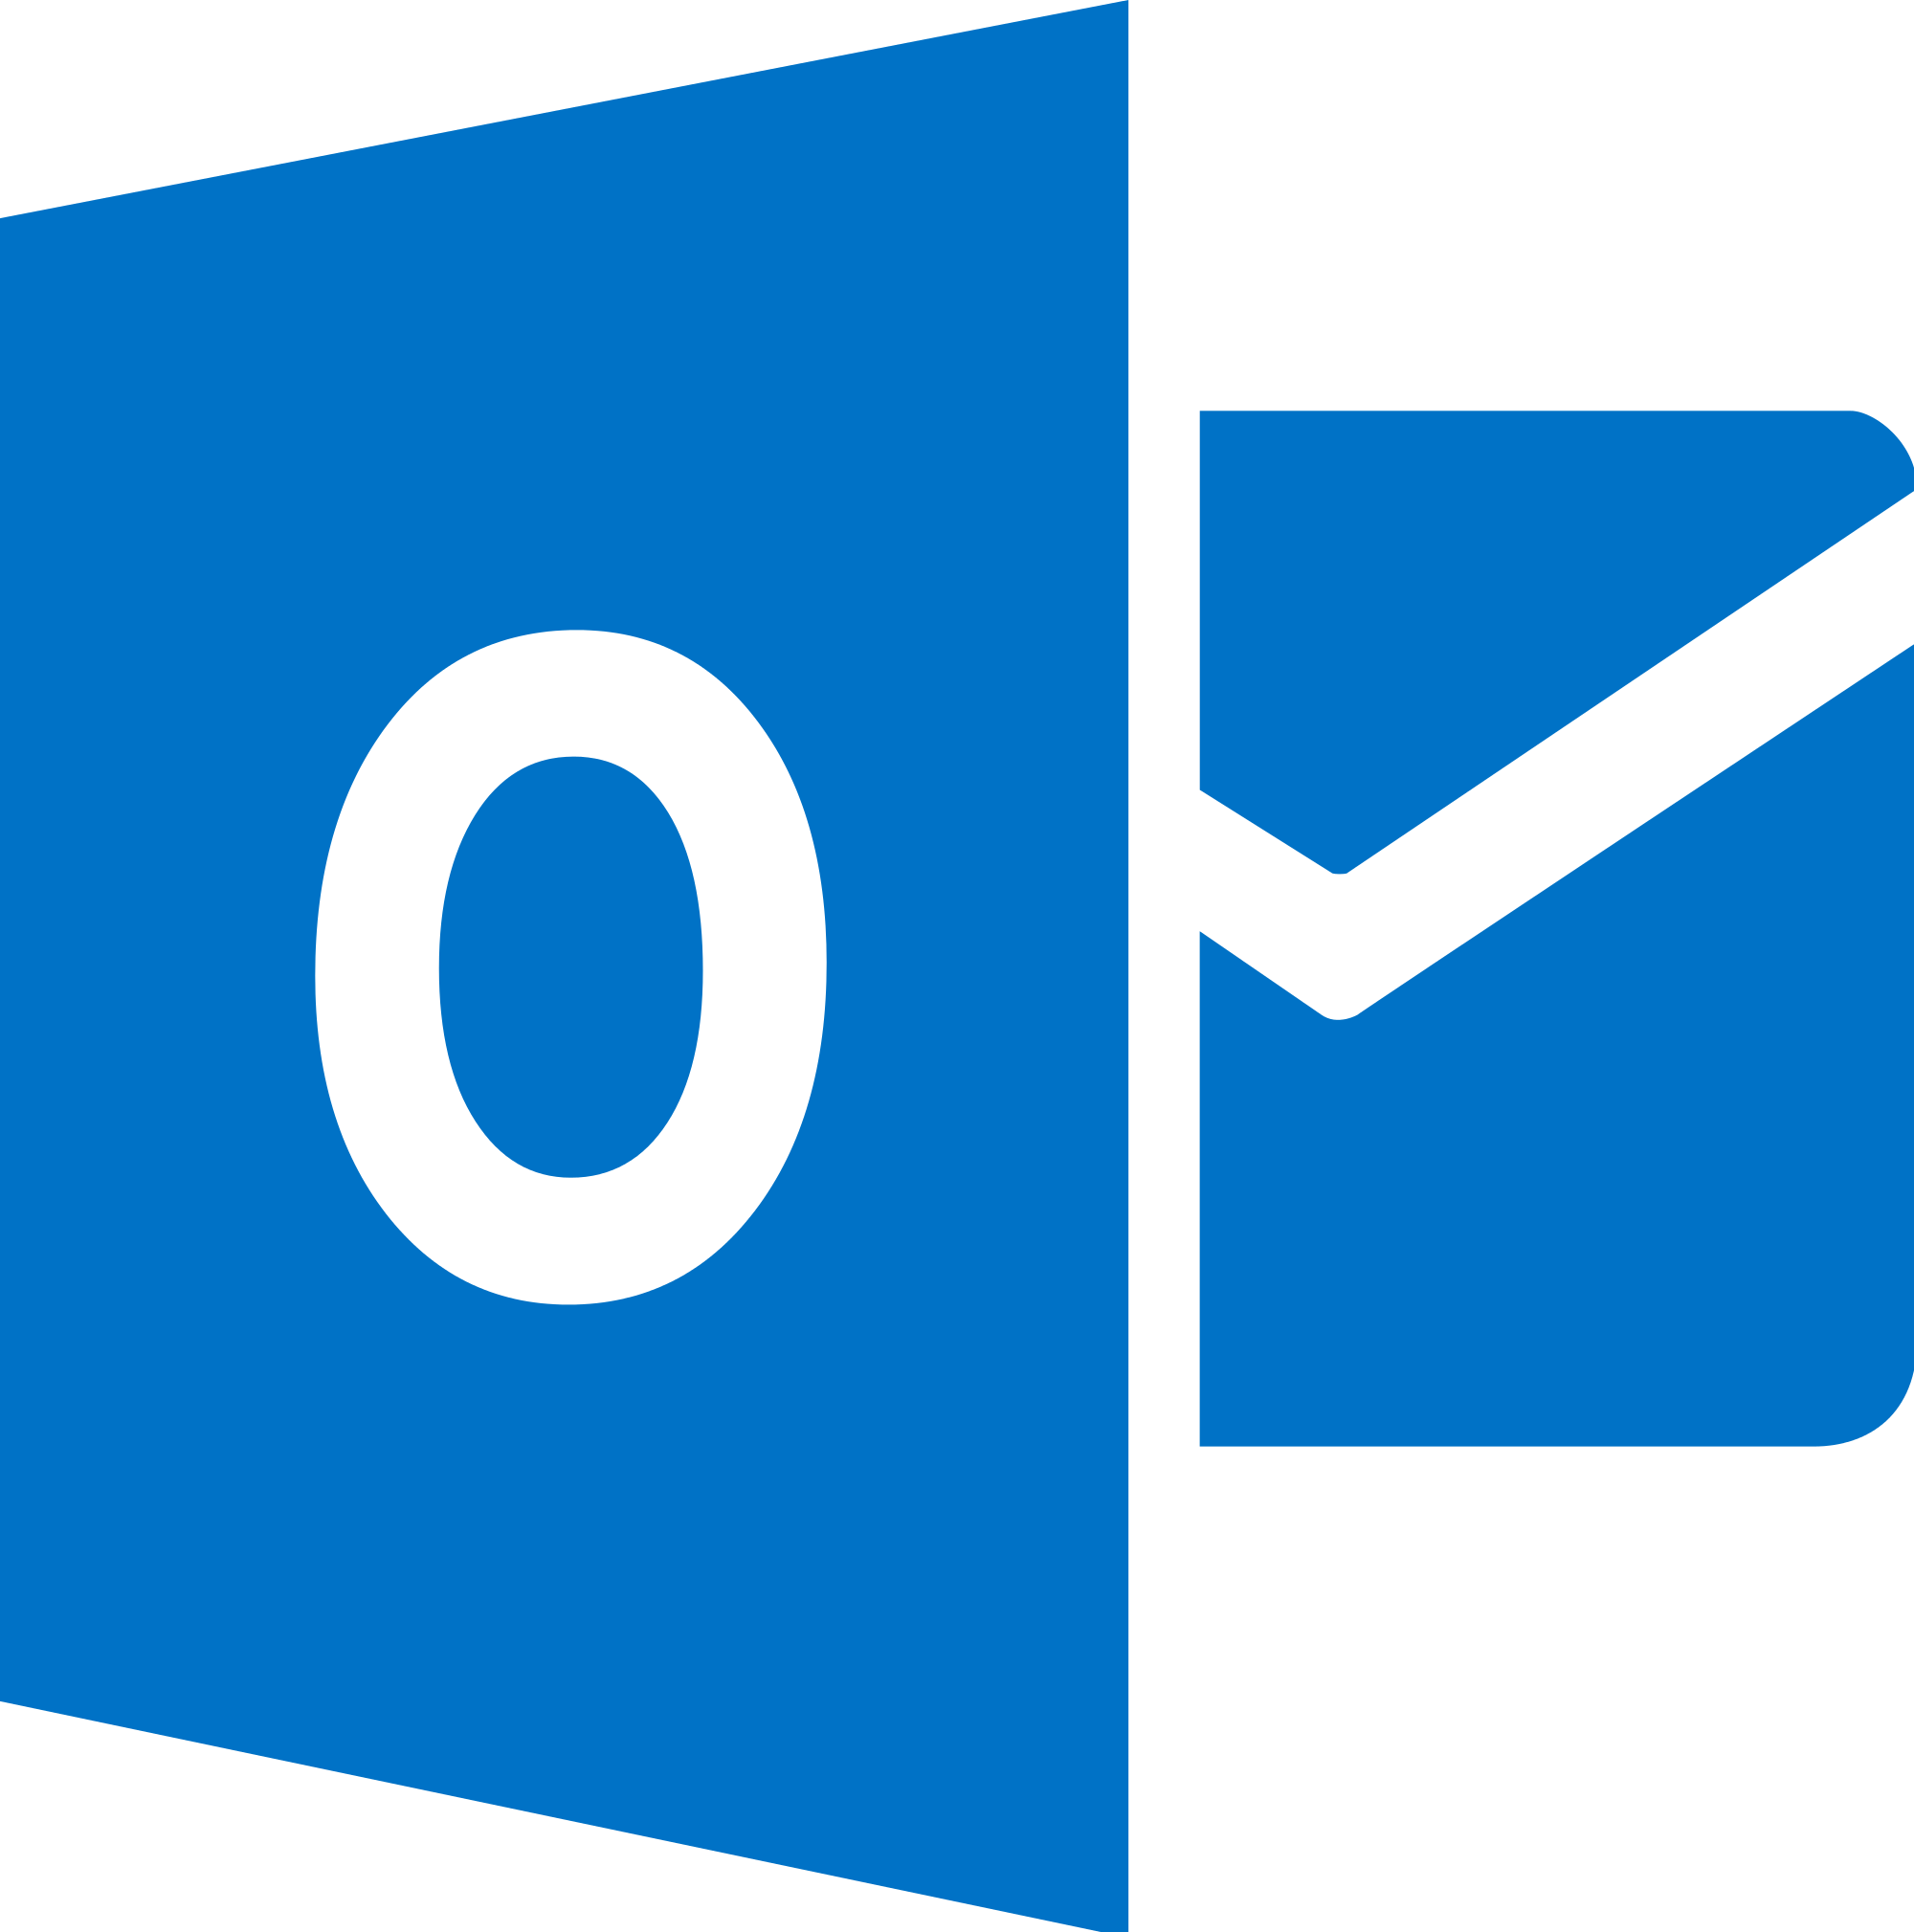 Outlook support download free clipart with a transparent.